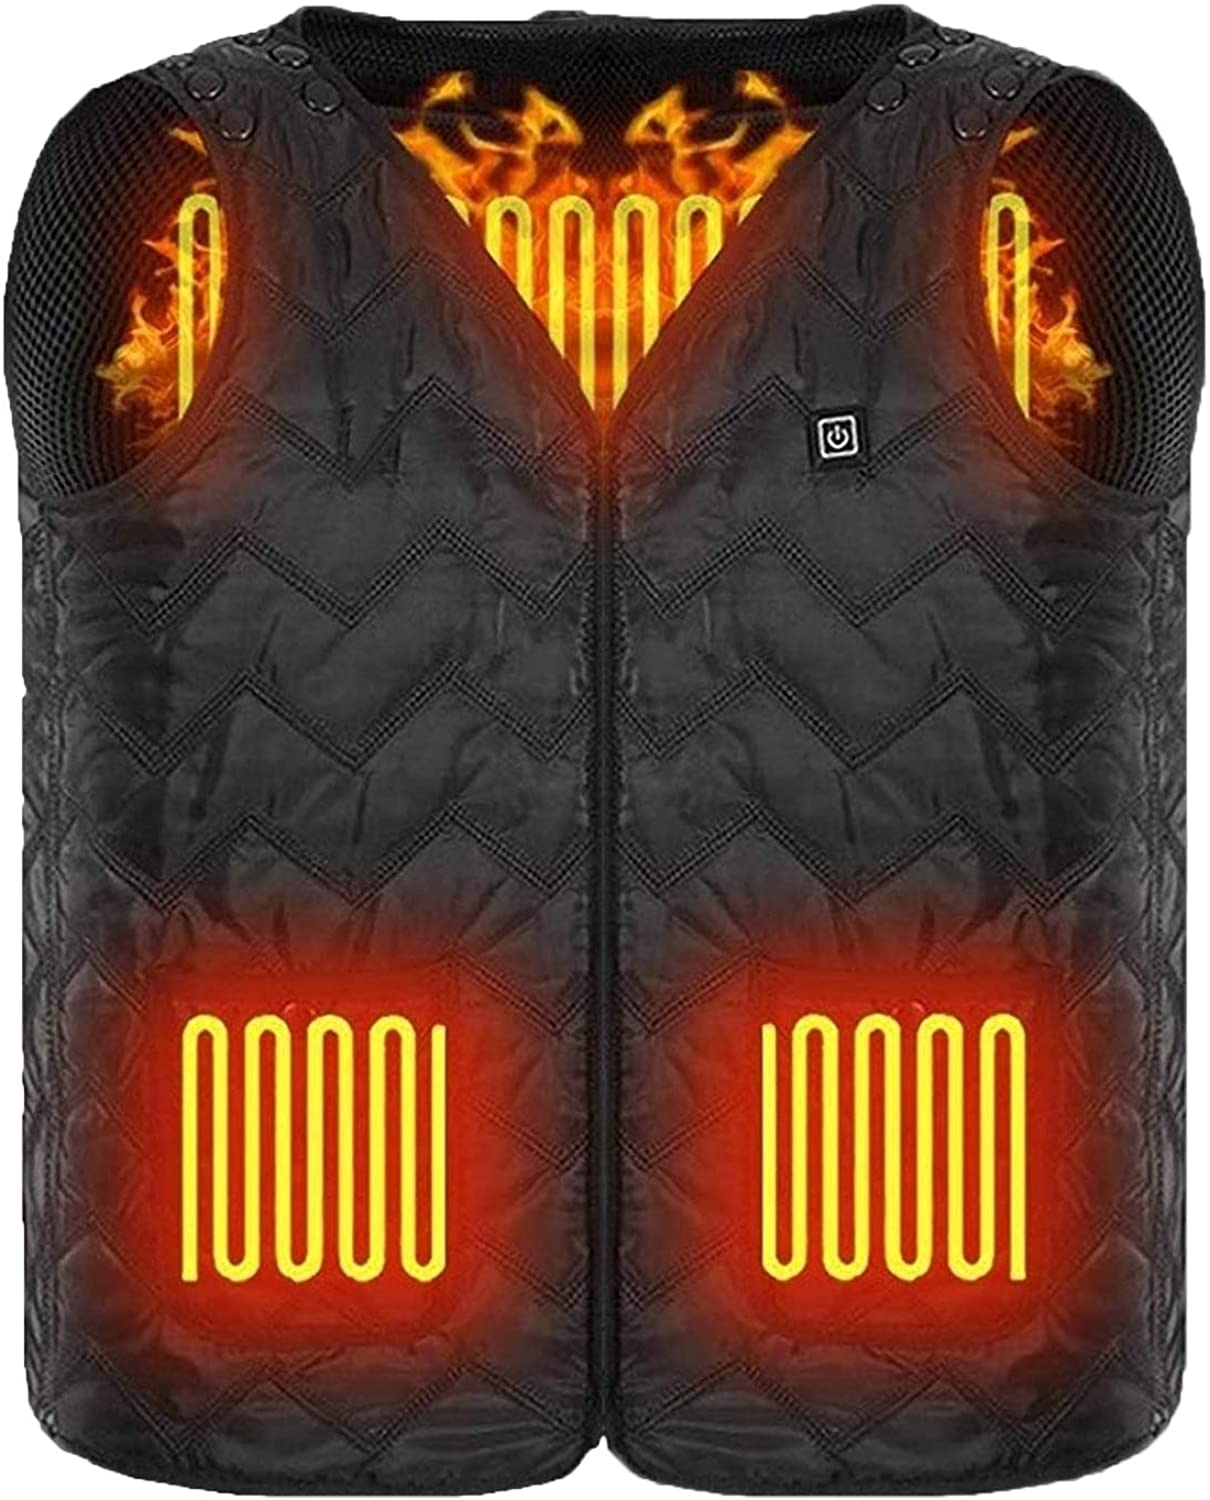 GULE GULE Unisex Warming USB Charging Heated Vest Adjustable Size with Zipper Suitable for Outdoor